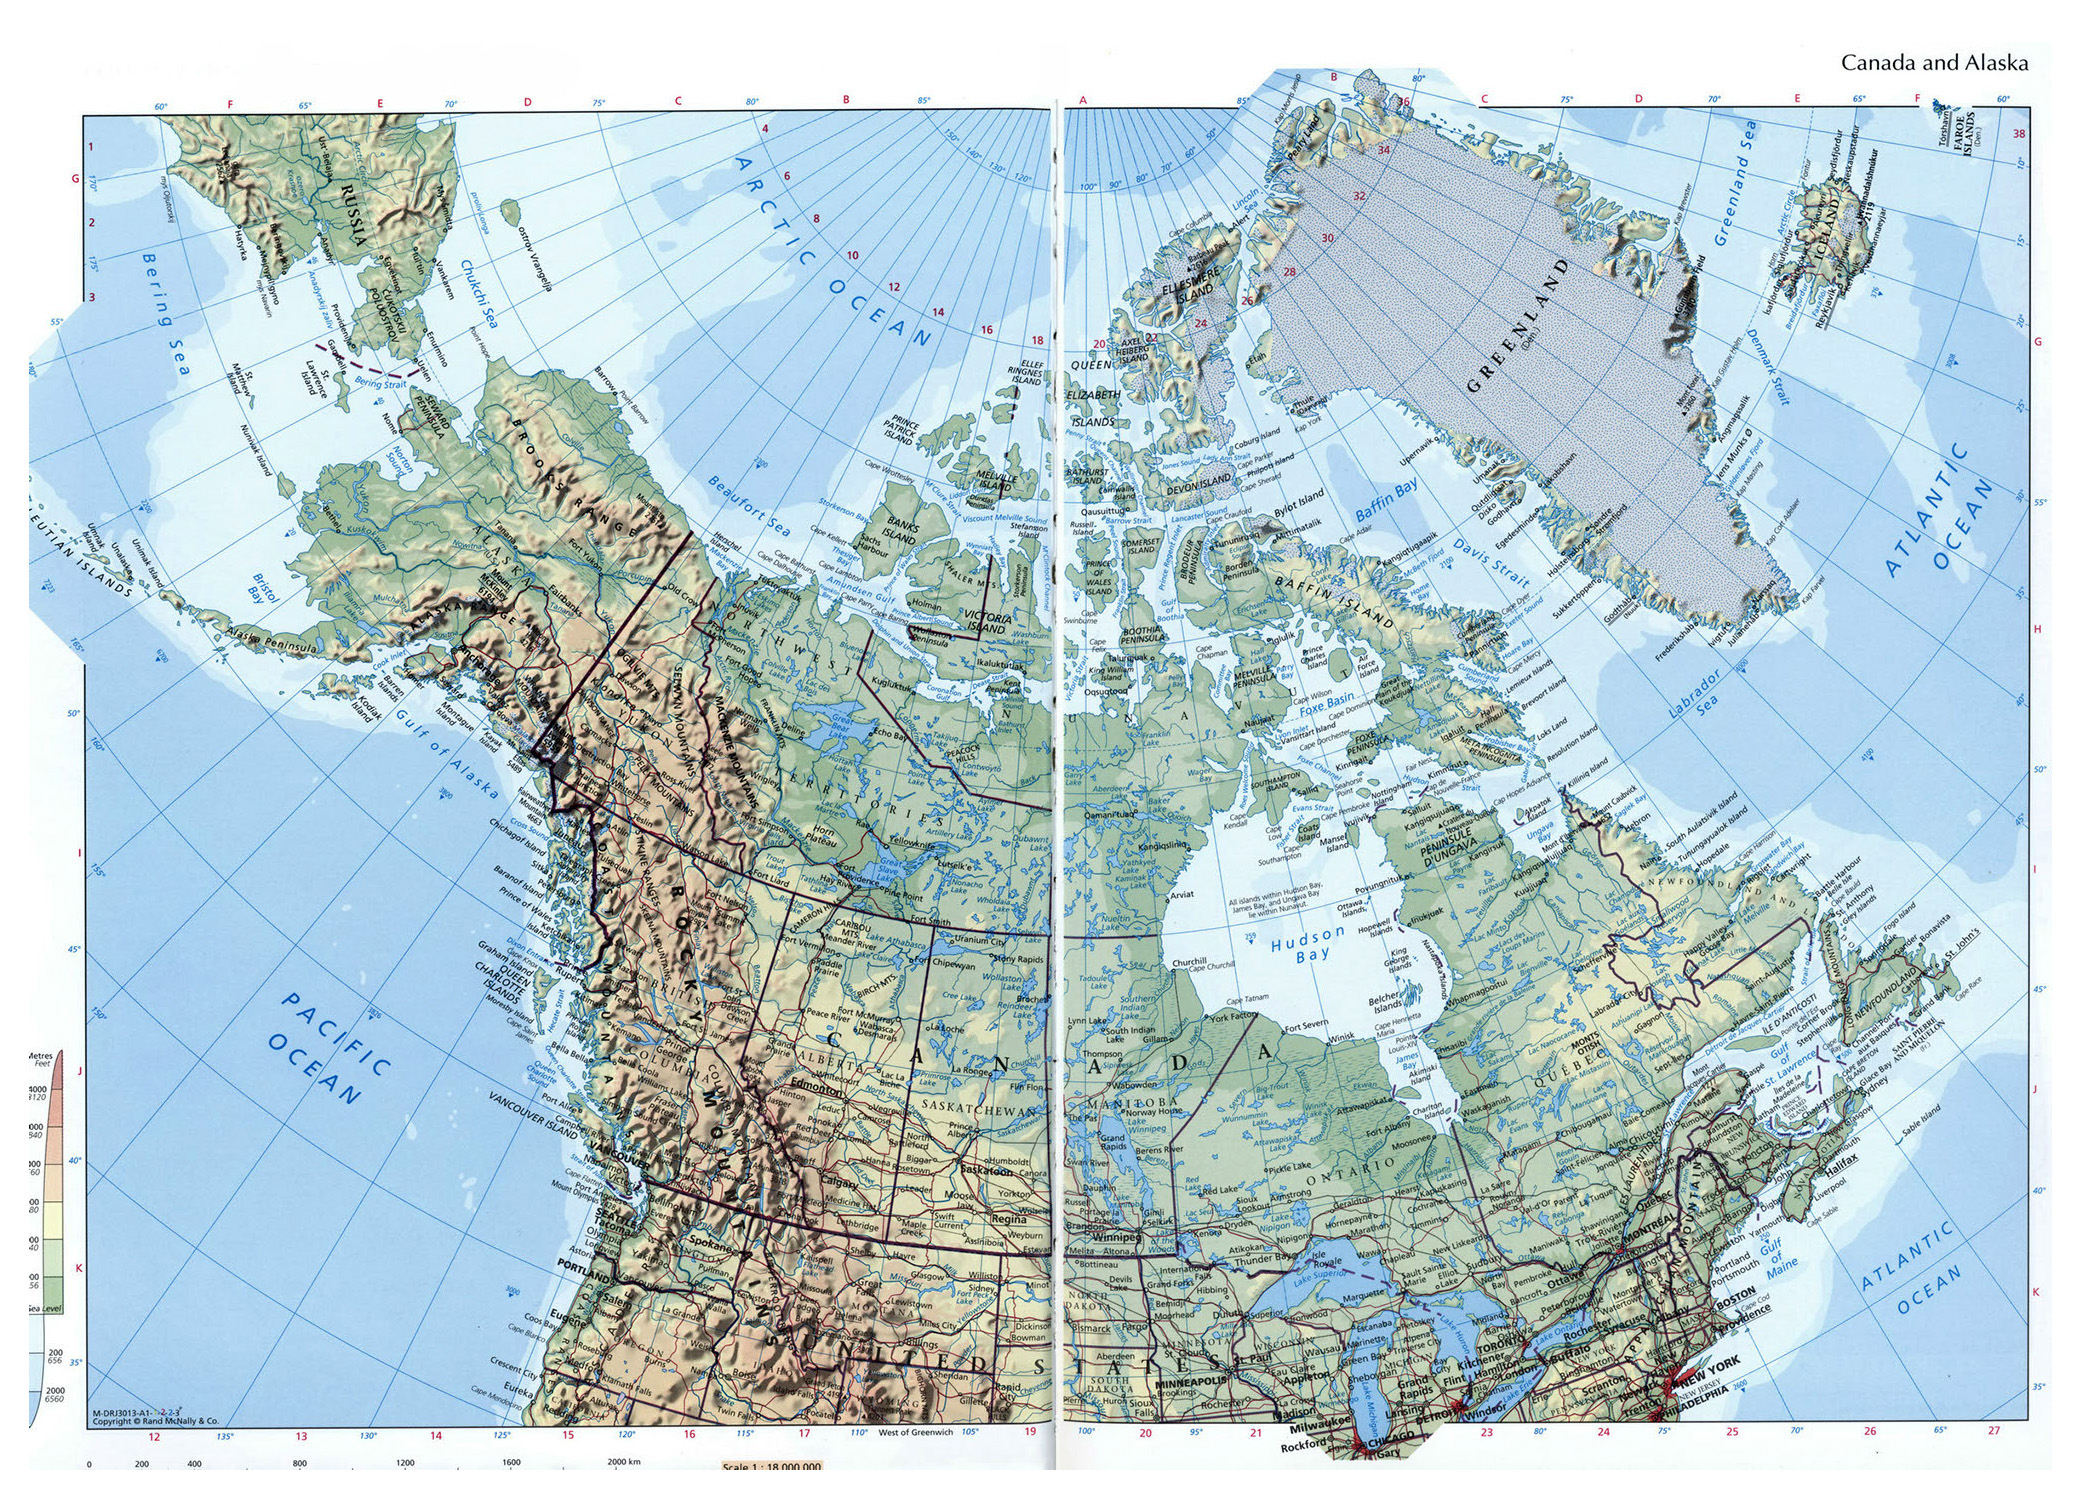 Large Elevation Map Of Canada And Alaska With Roads And Cities